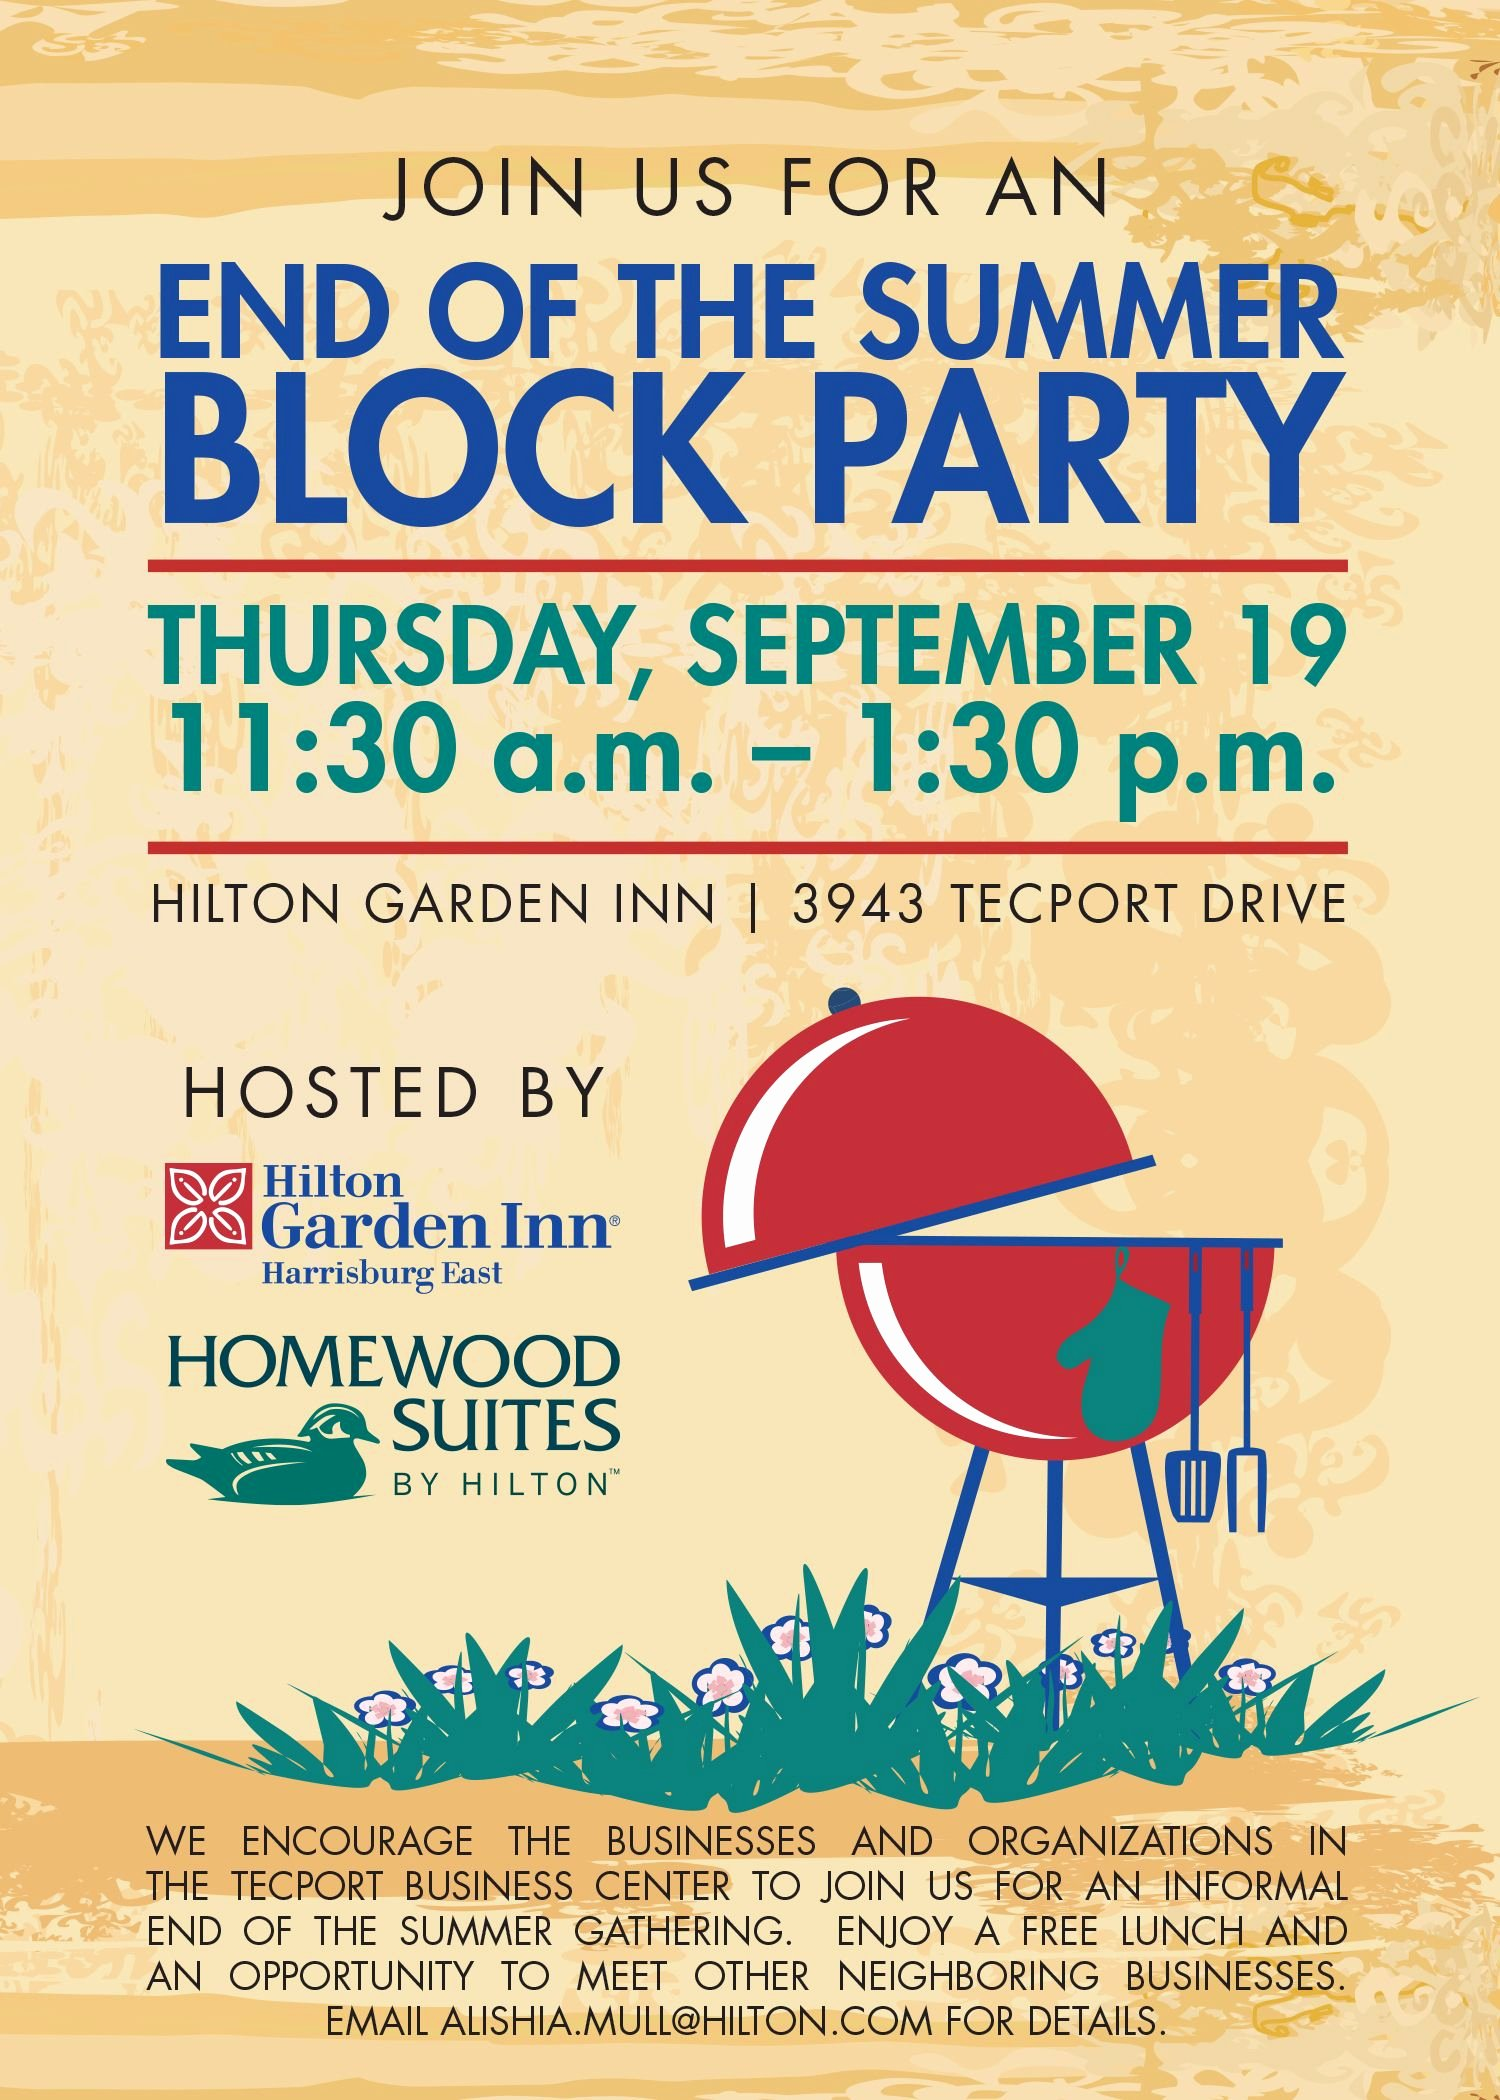 Block Party Invite Template Fresh Block Party Invitation for Homewood Suites and Hilton